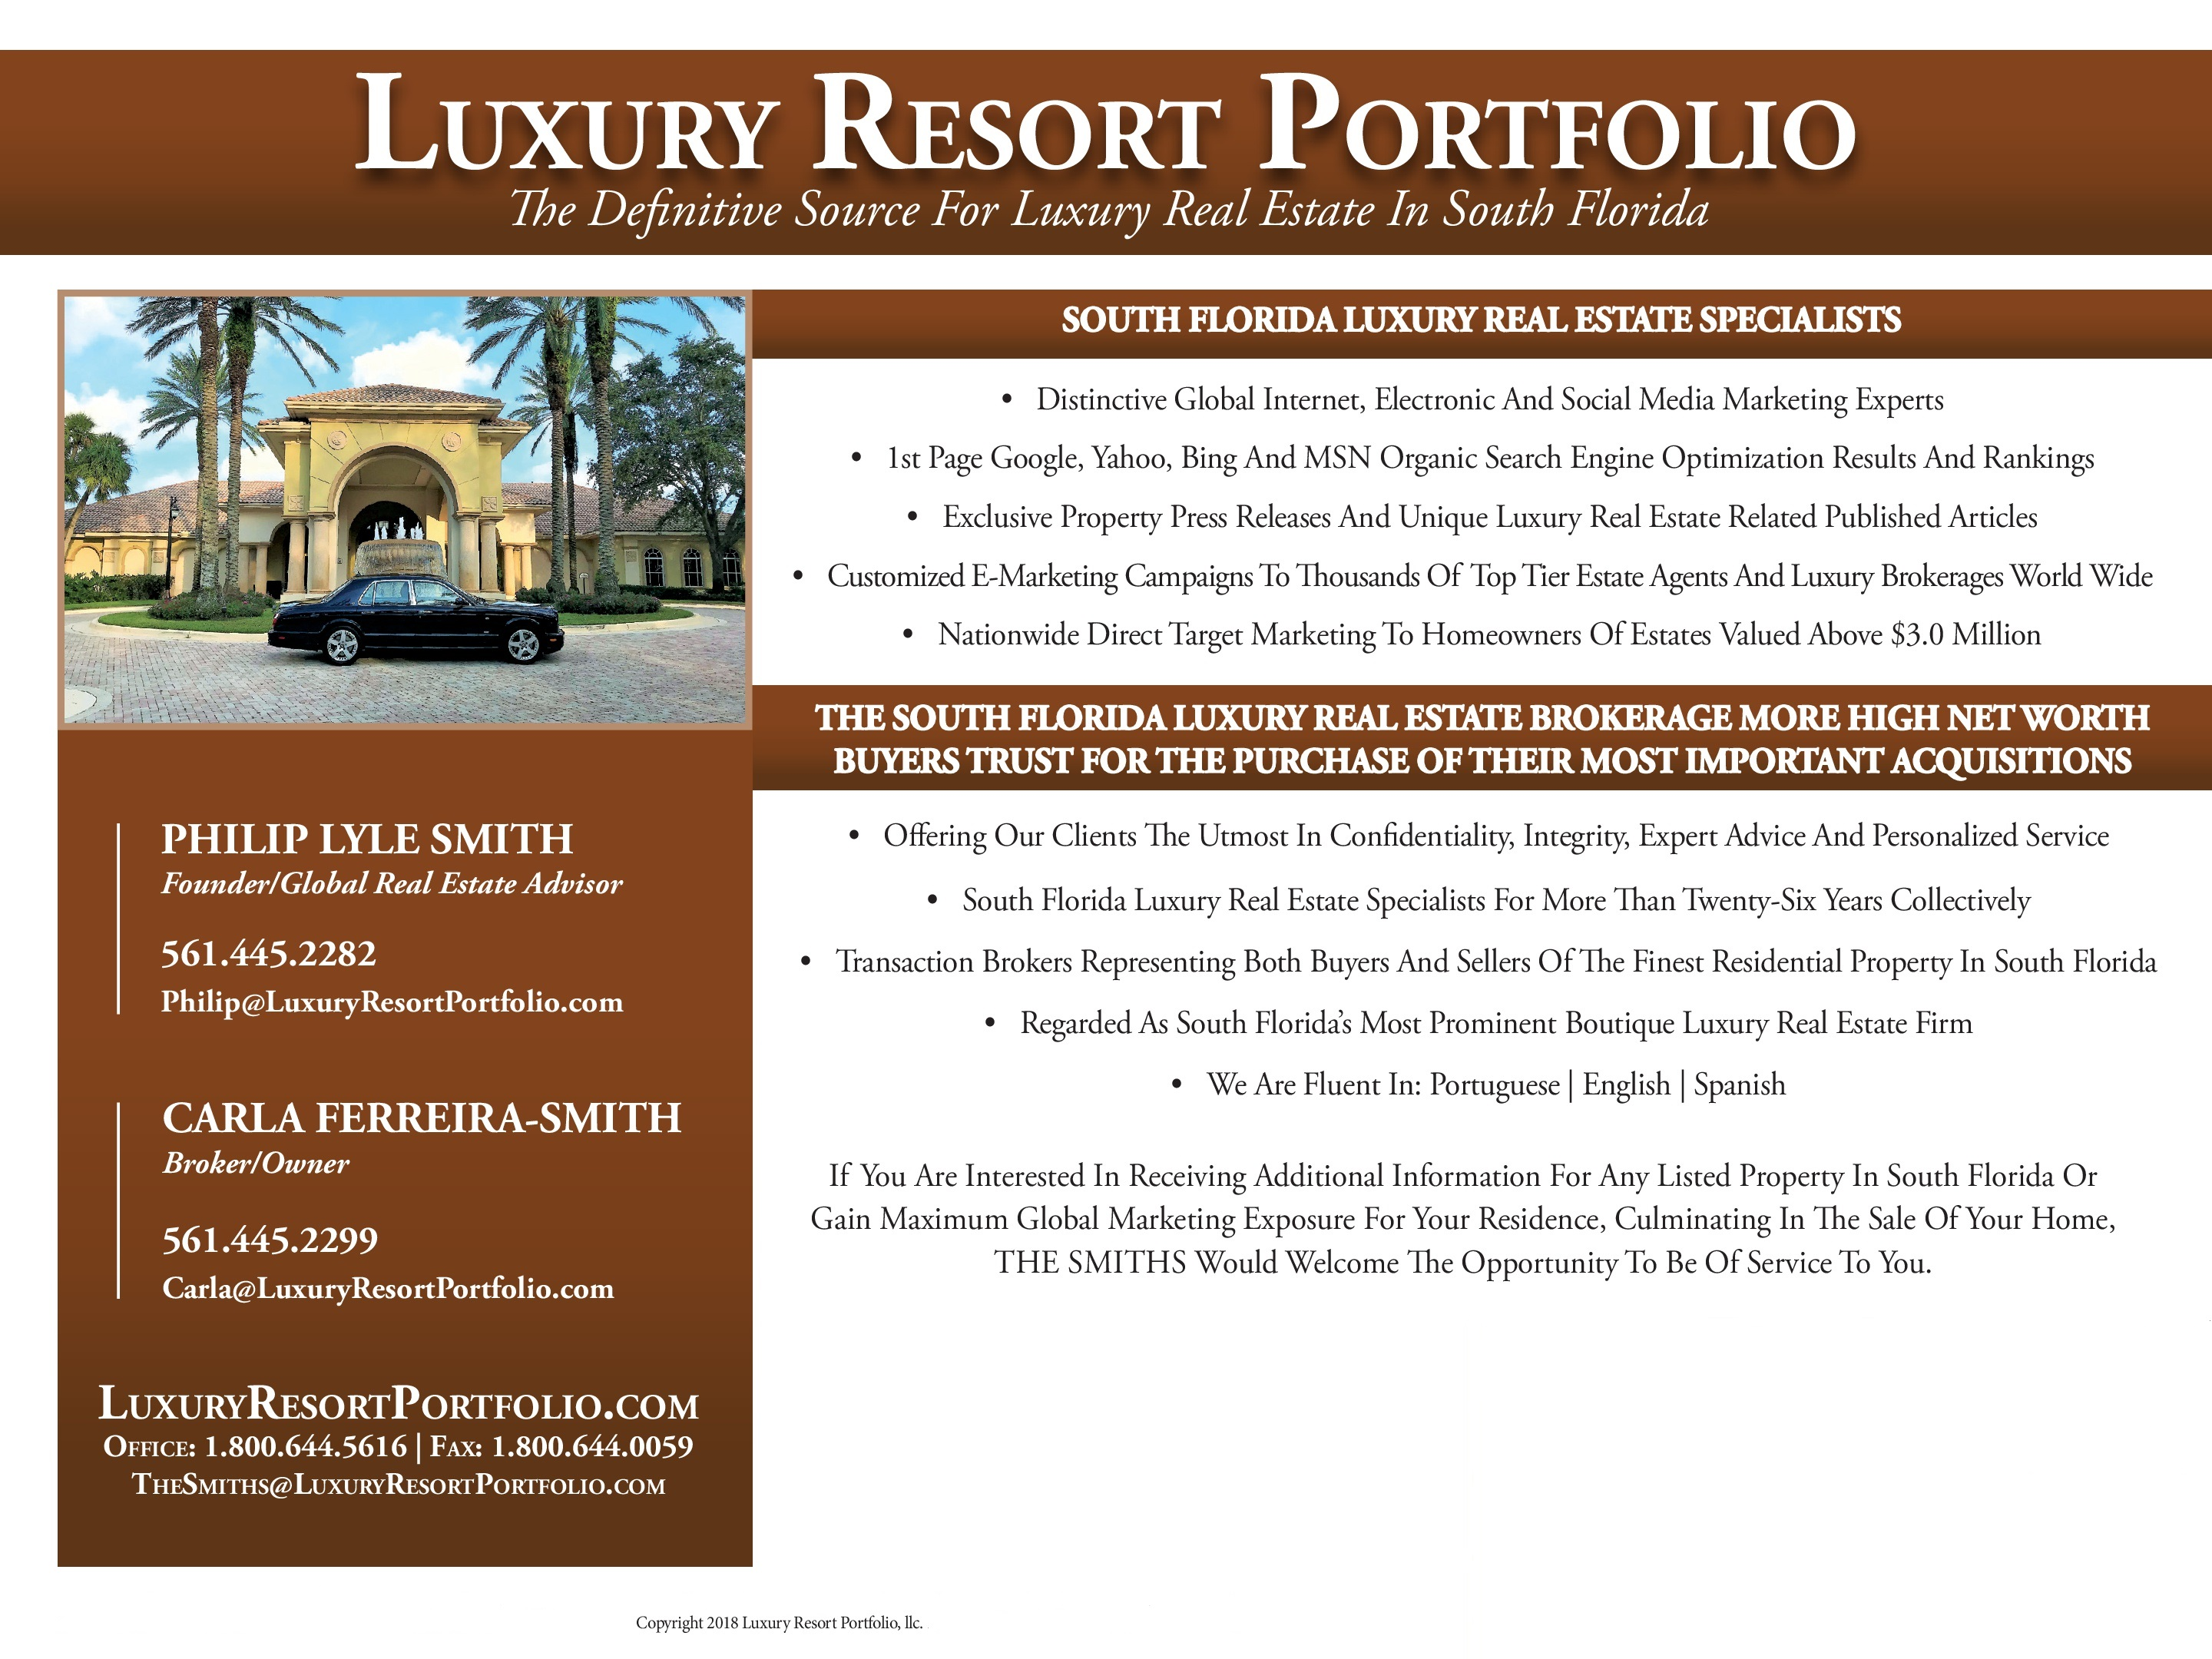 South Florida Luxury Real Estate Specialists Luxury Resort Portfolio_South  Florida Luxury Real Estate